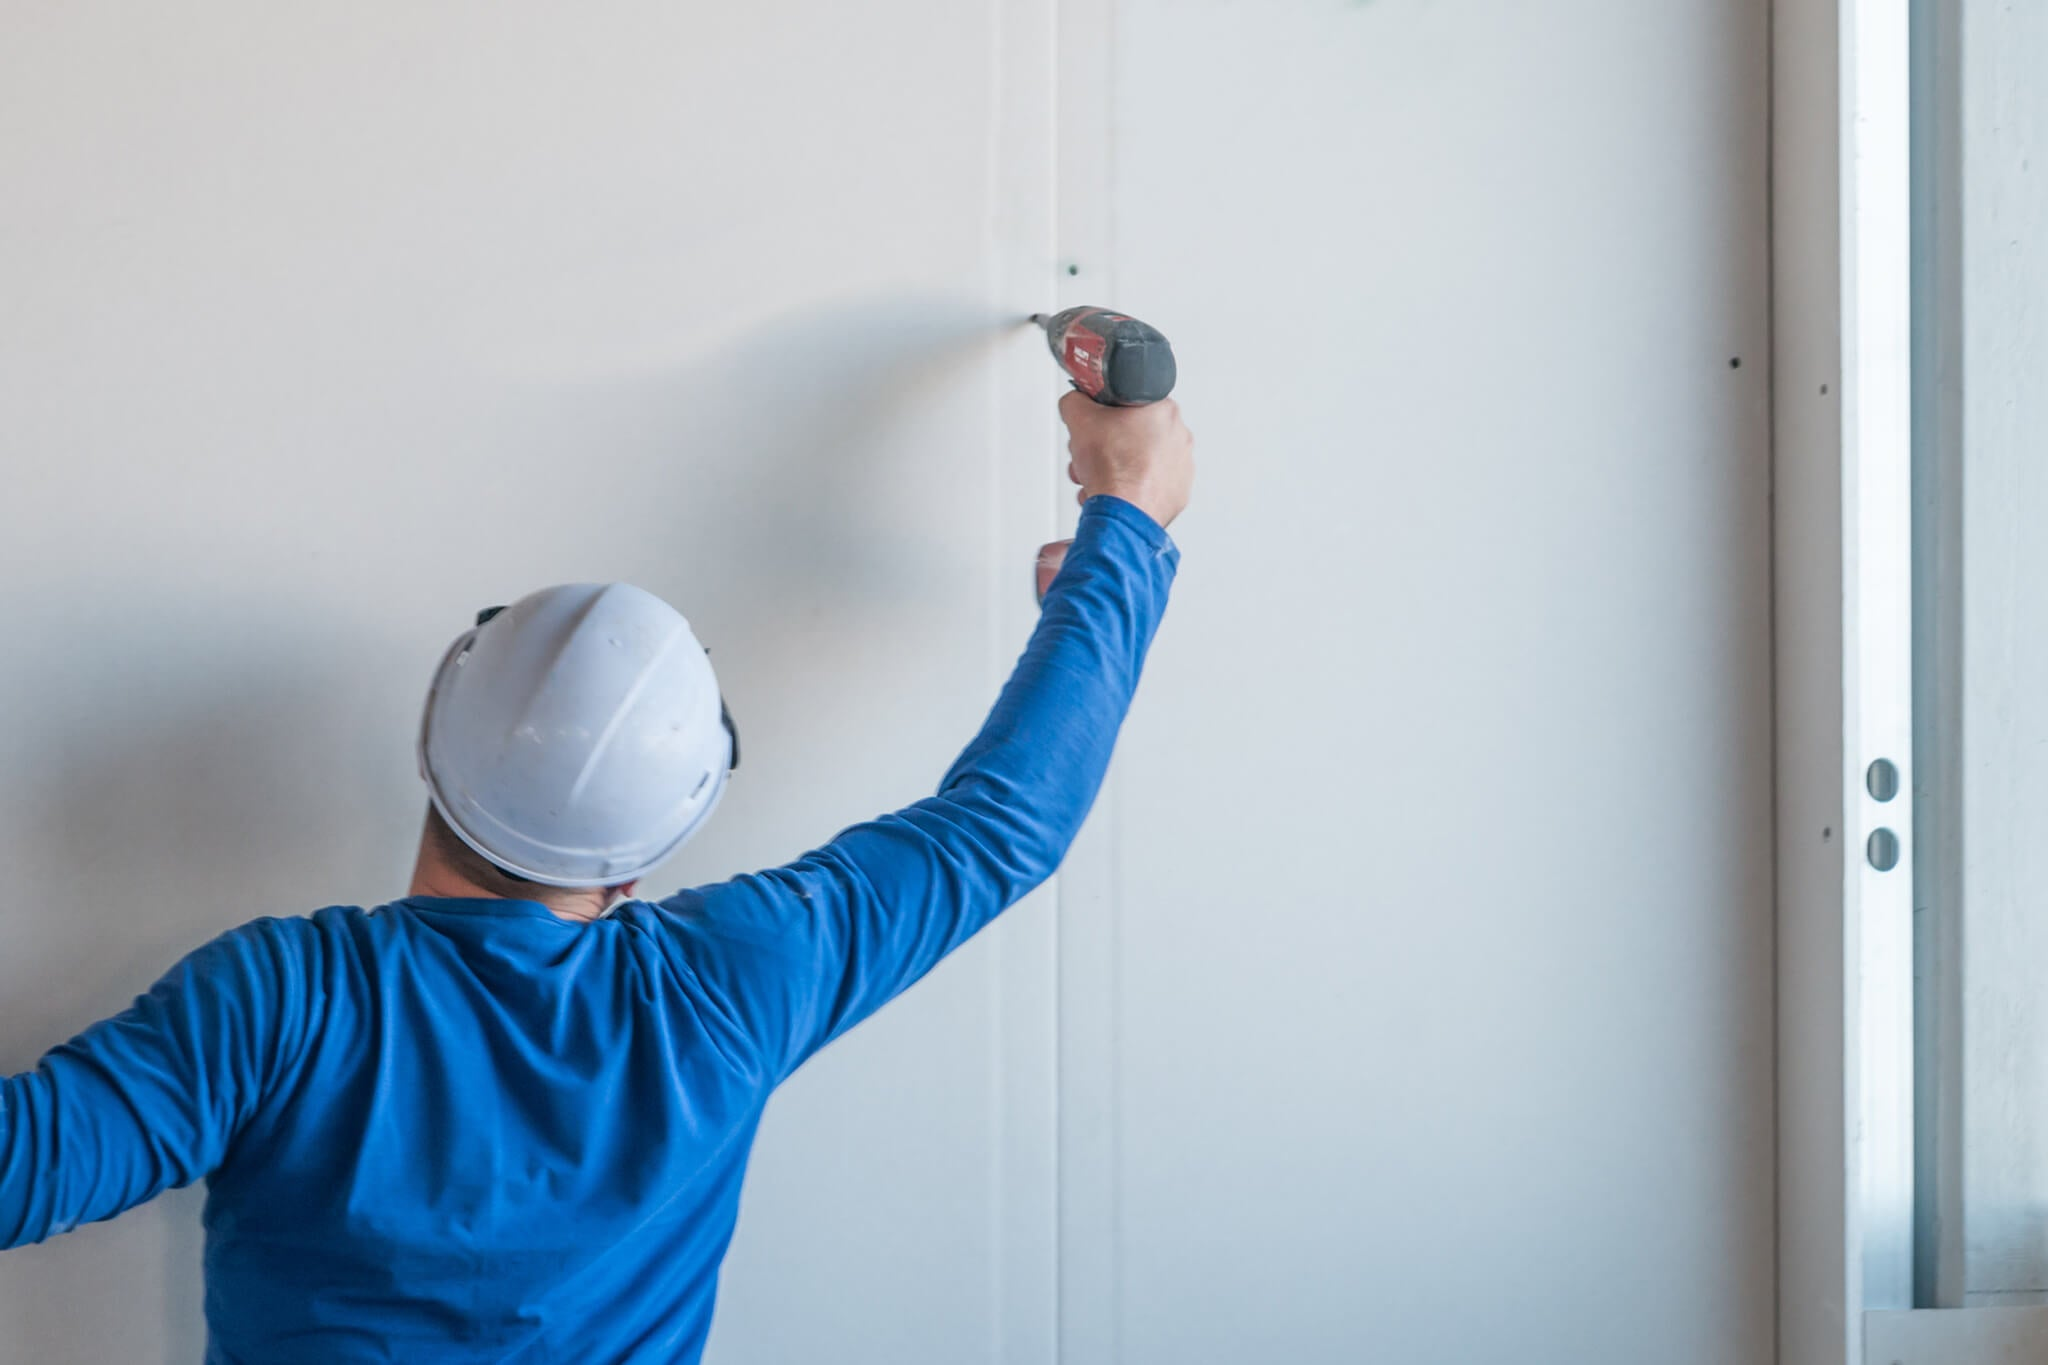 Installing the last drywall panel